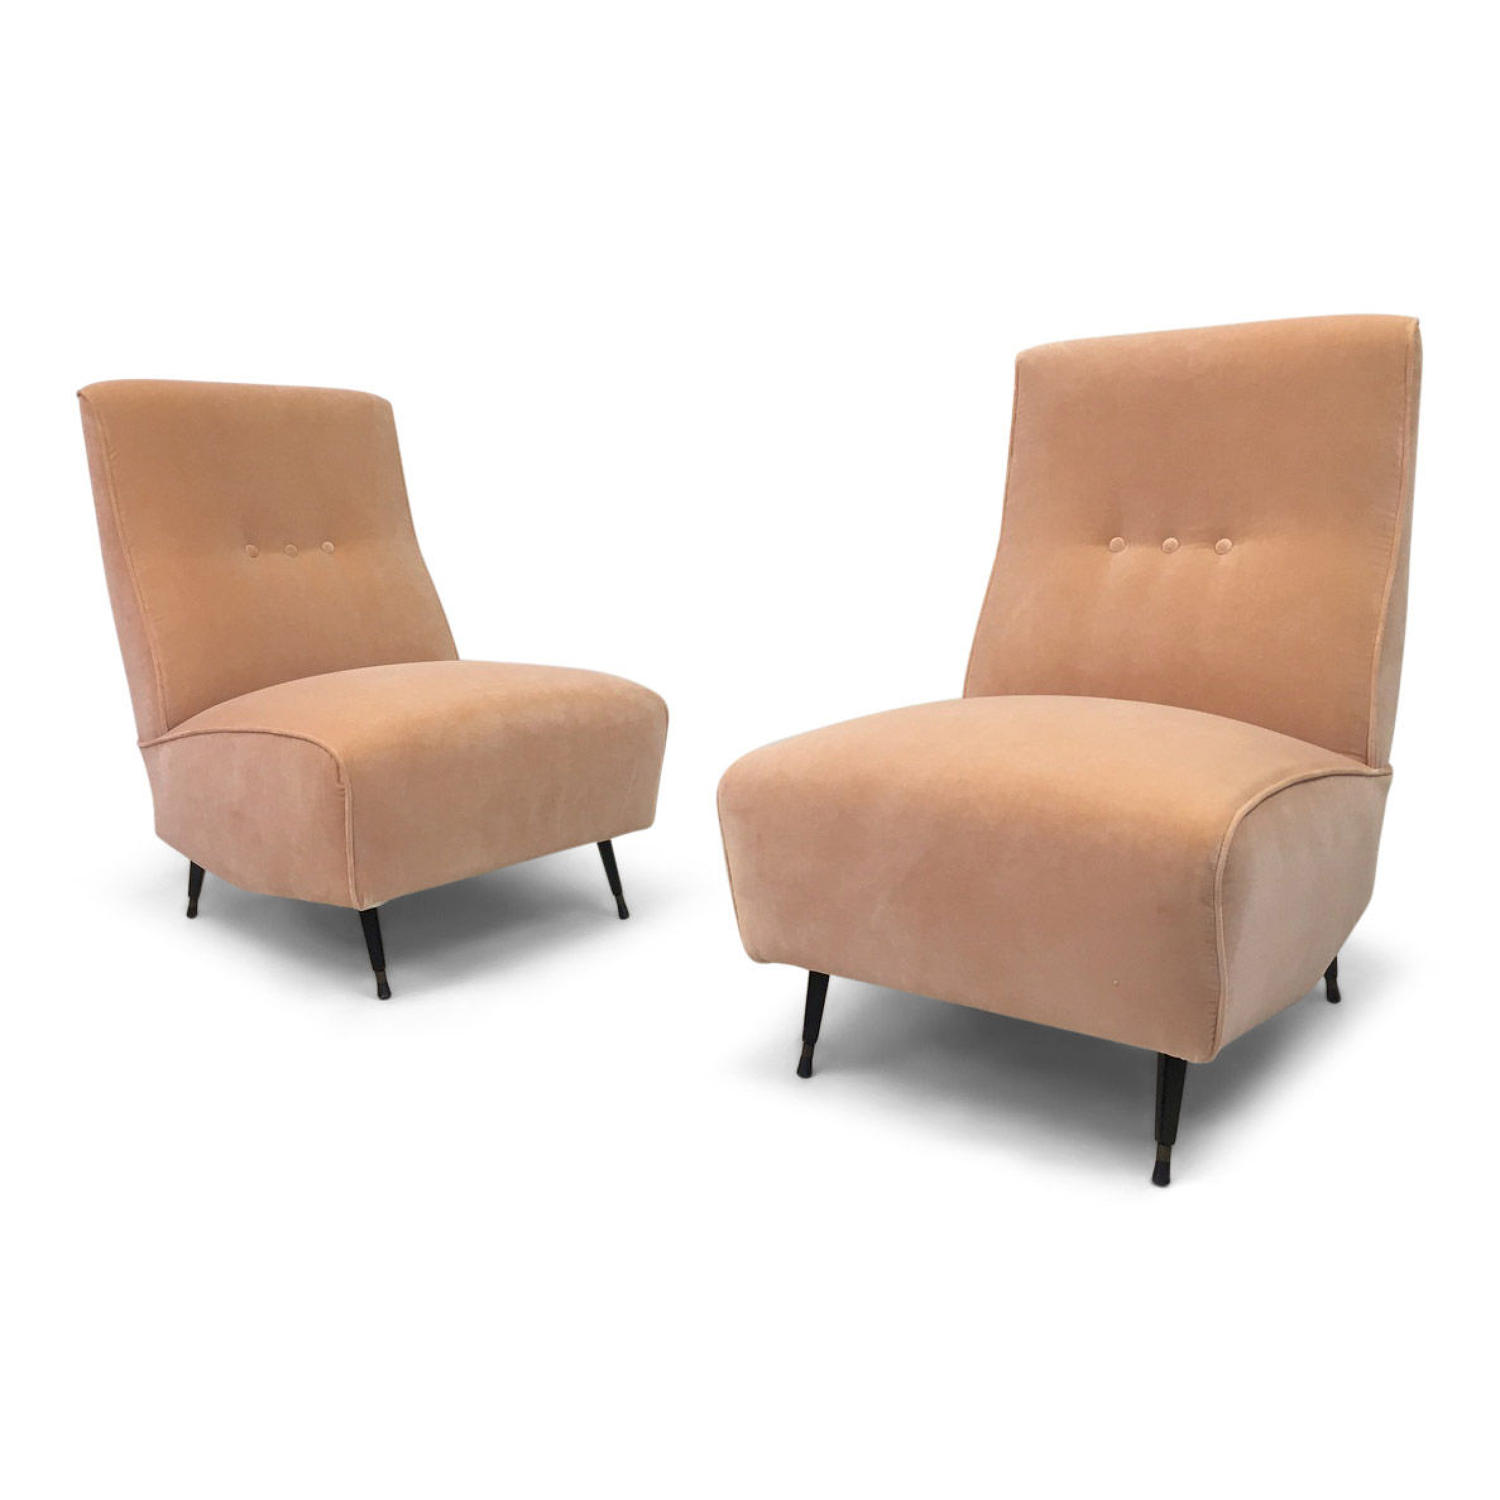 A pair of 1950s Italian lounge chairs in peach velvet